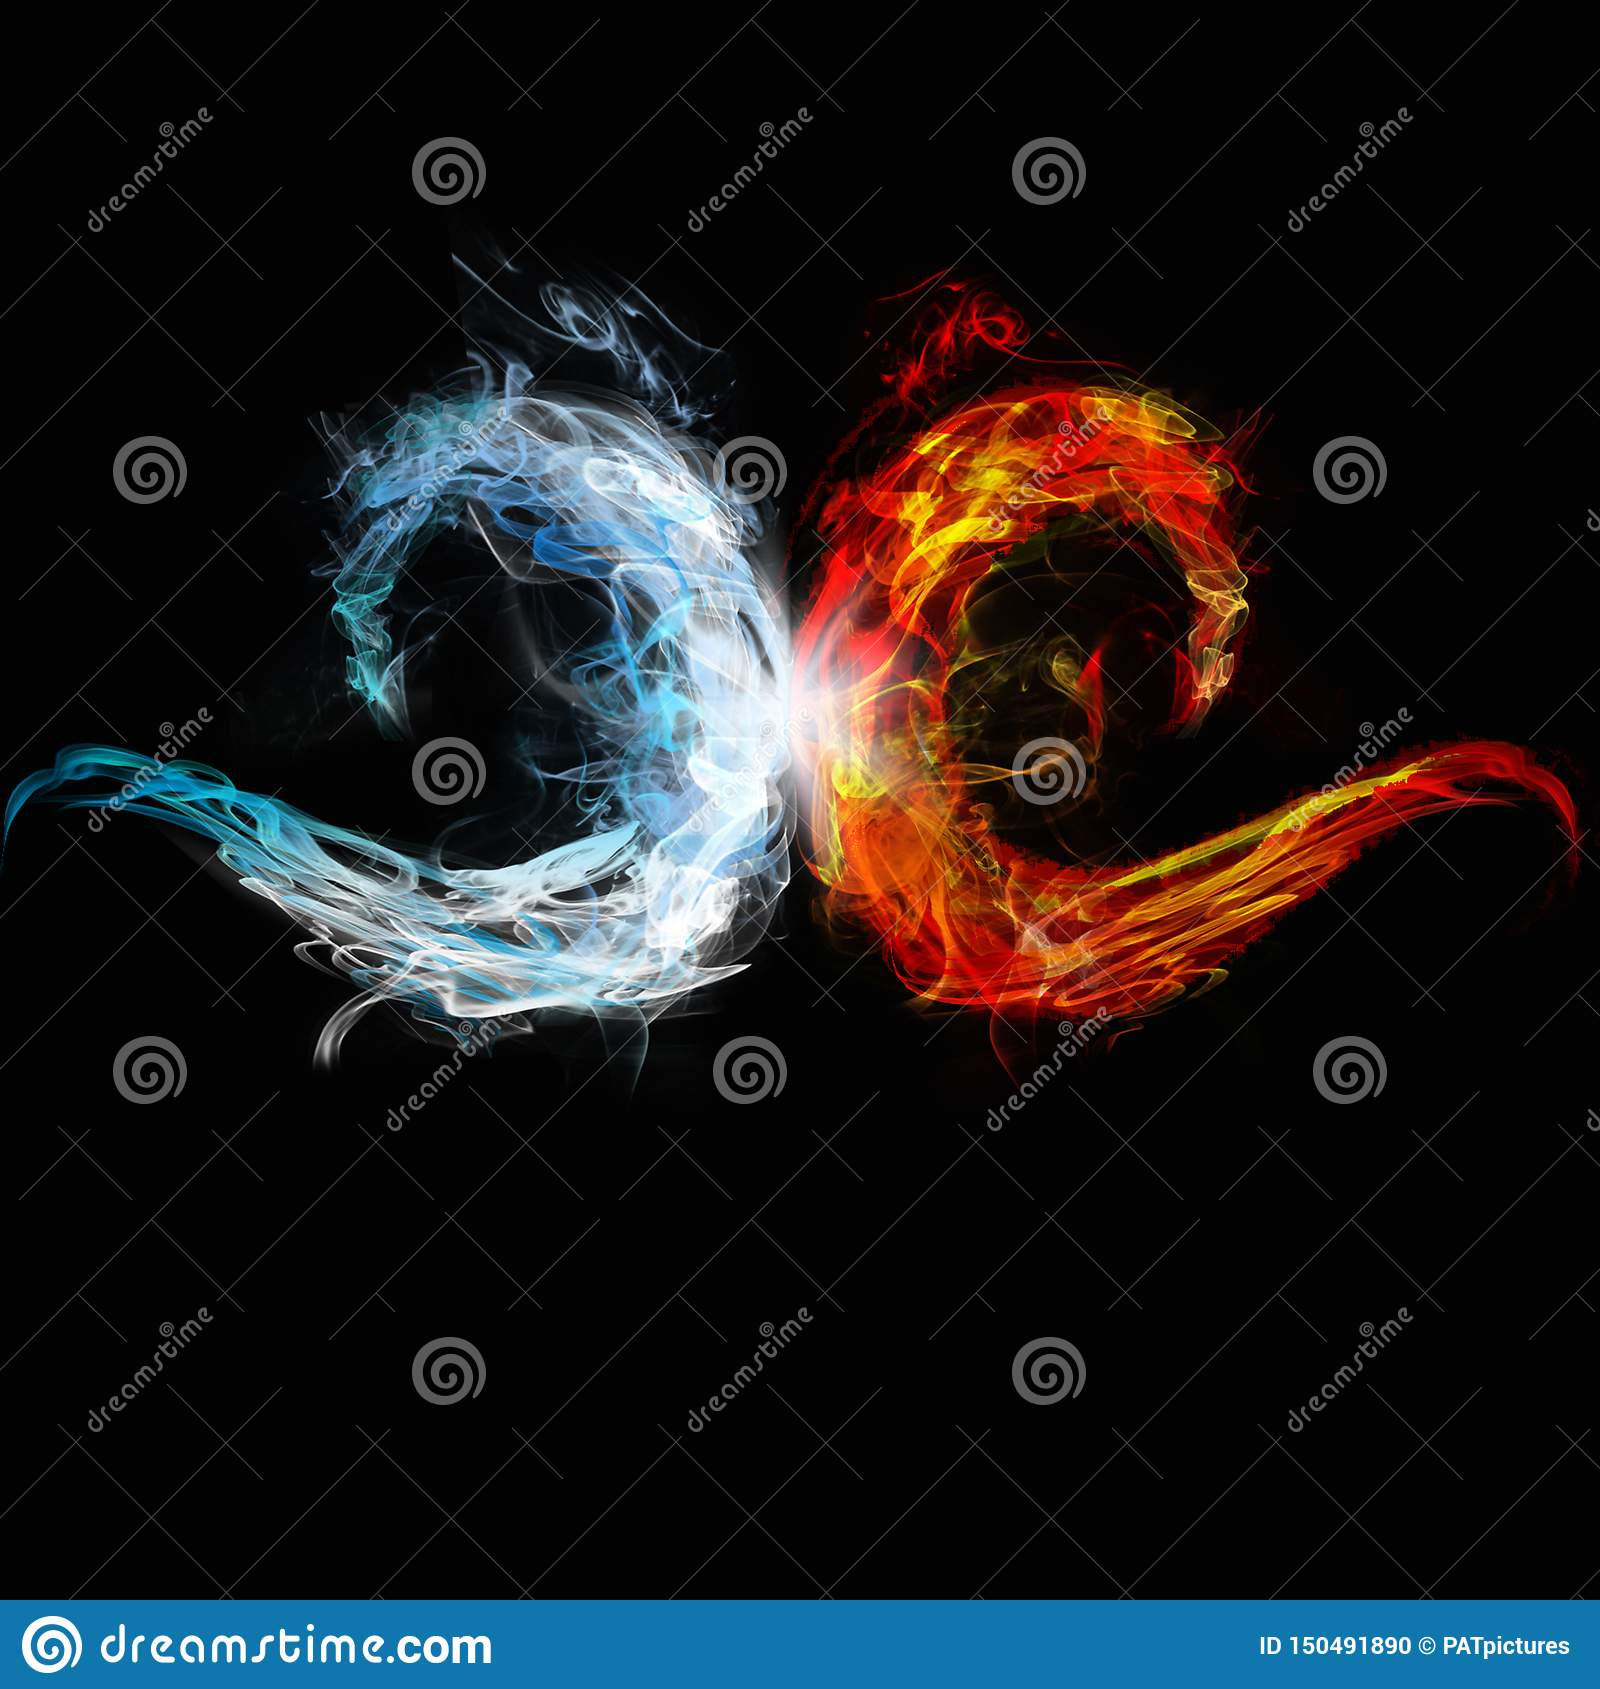 Two waves of ice and fire meet